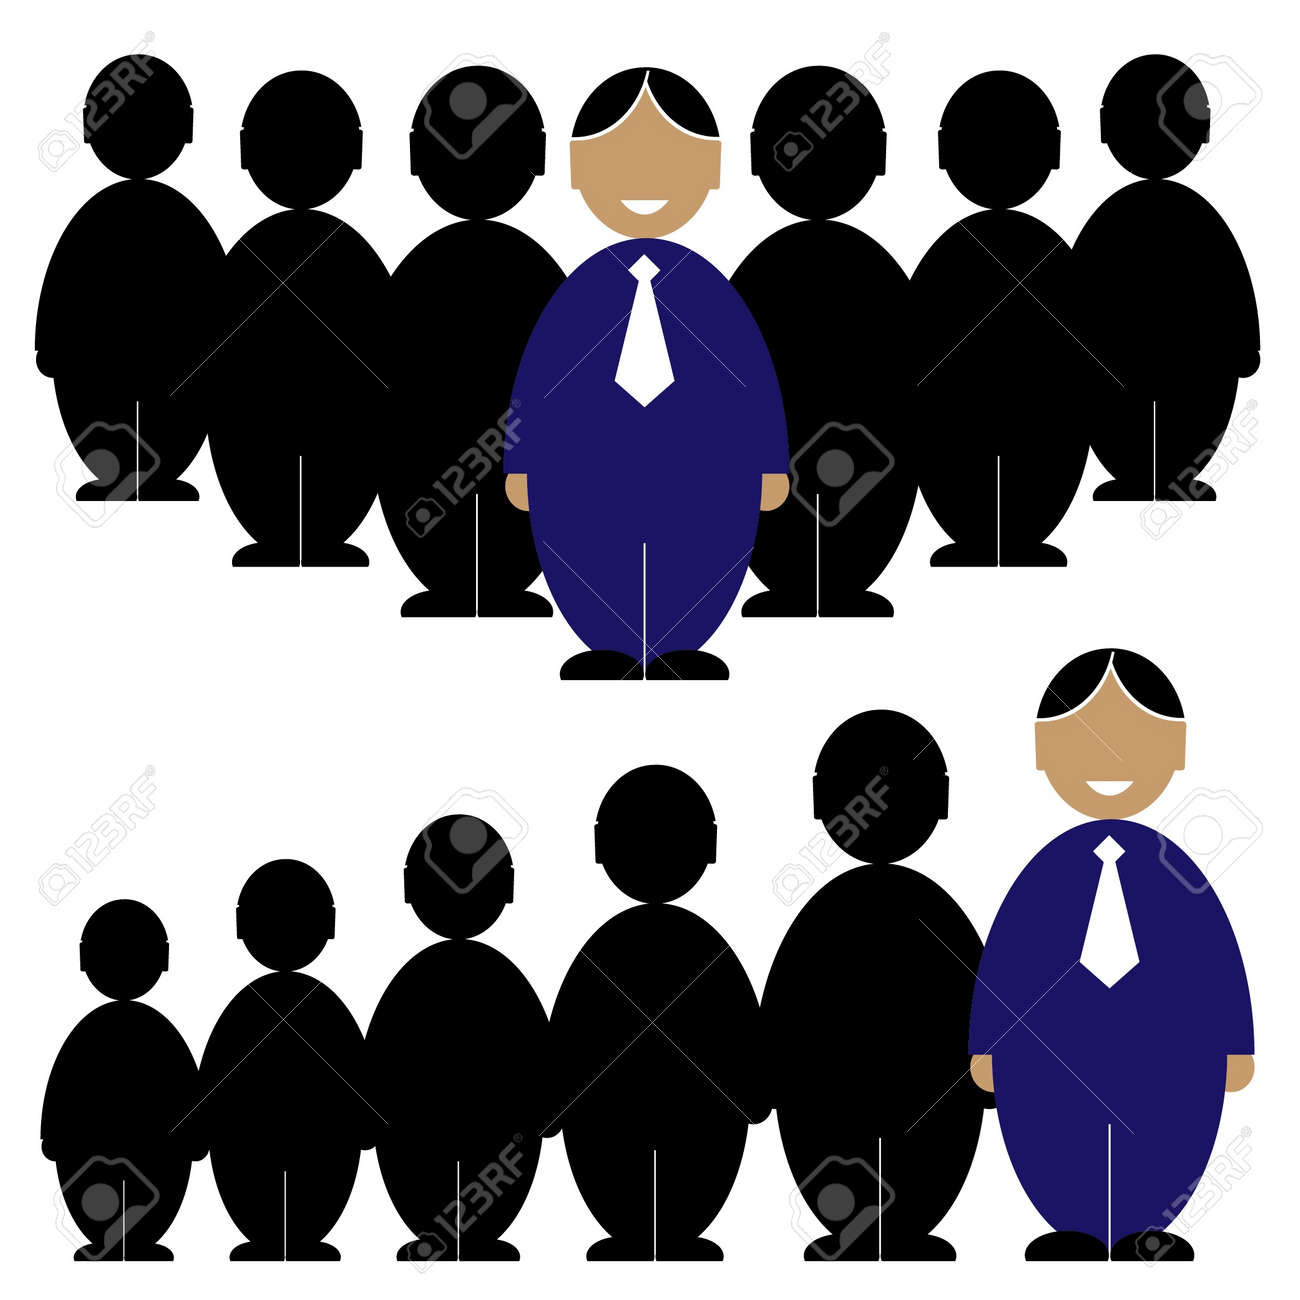 man icon,people icon,business icon,business man Stock Vector - 17203258